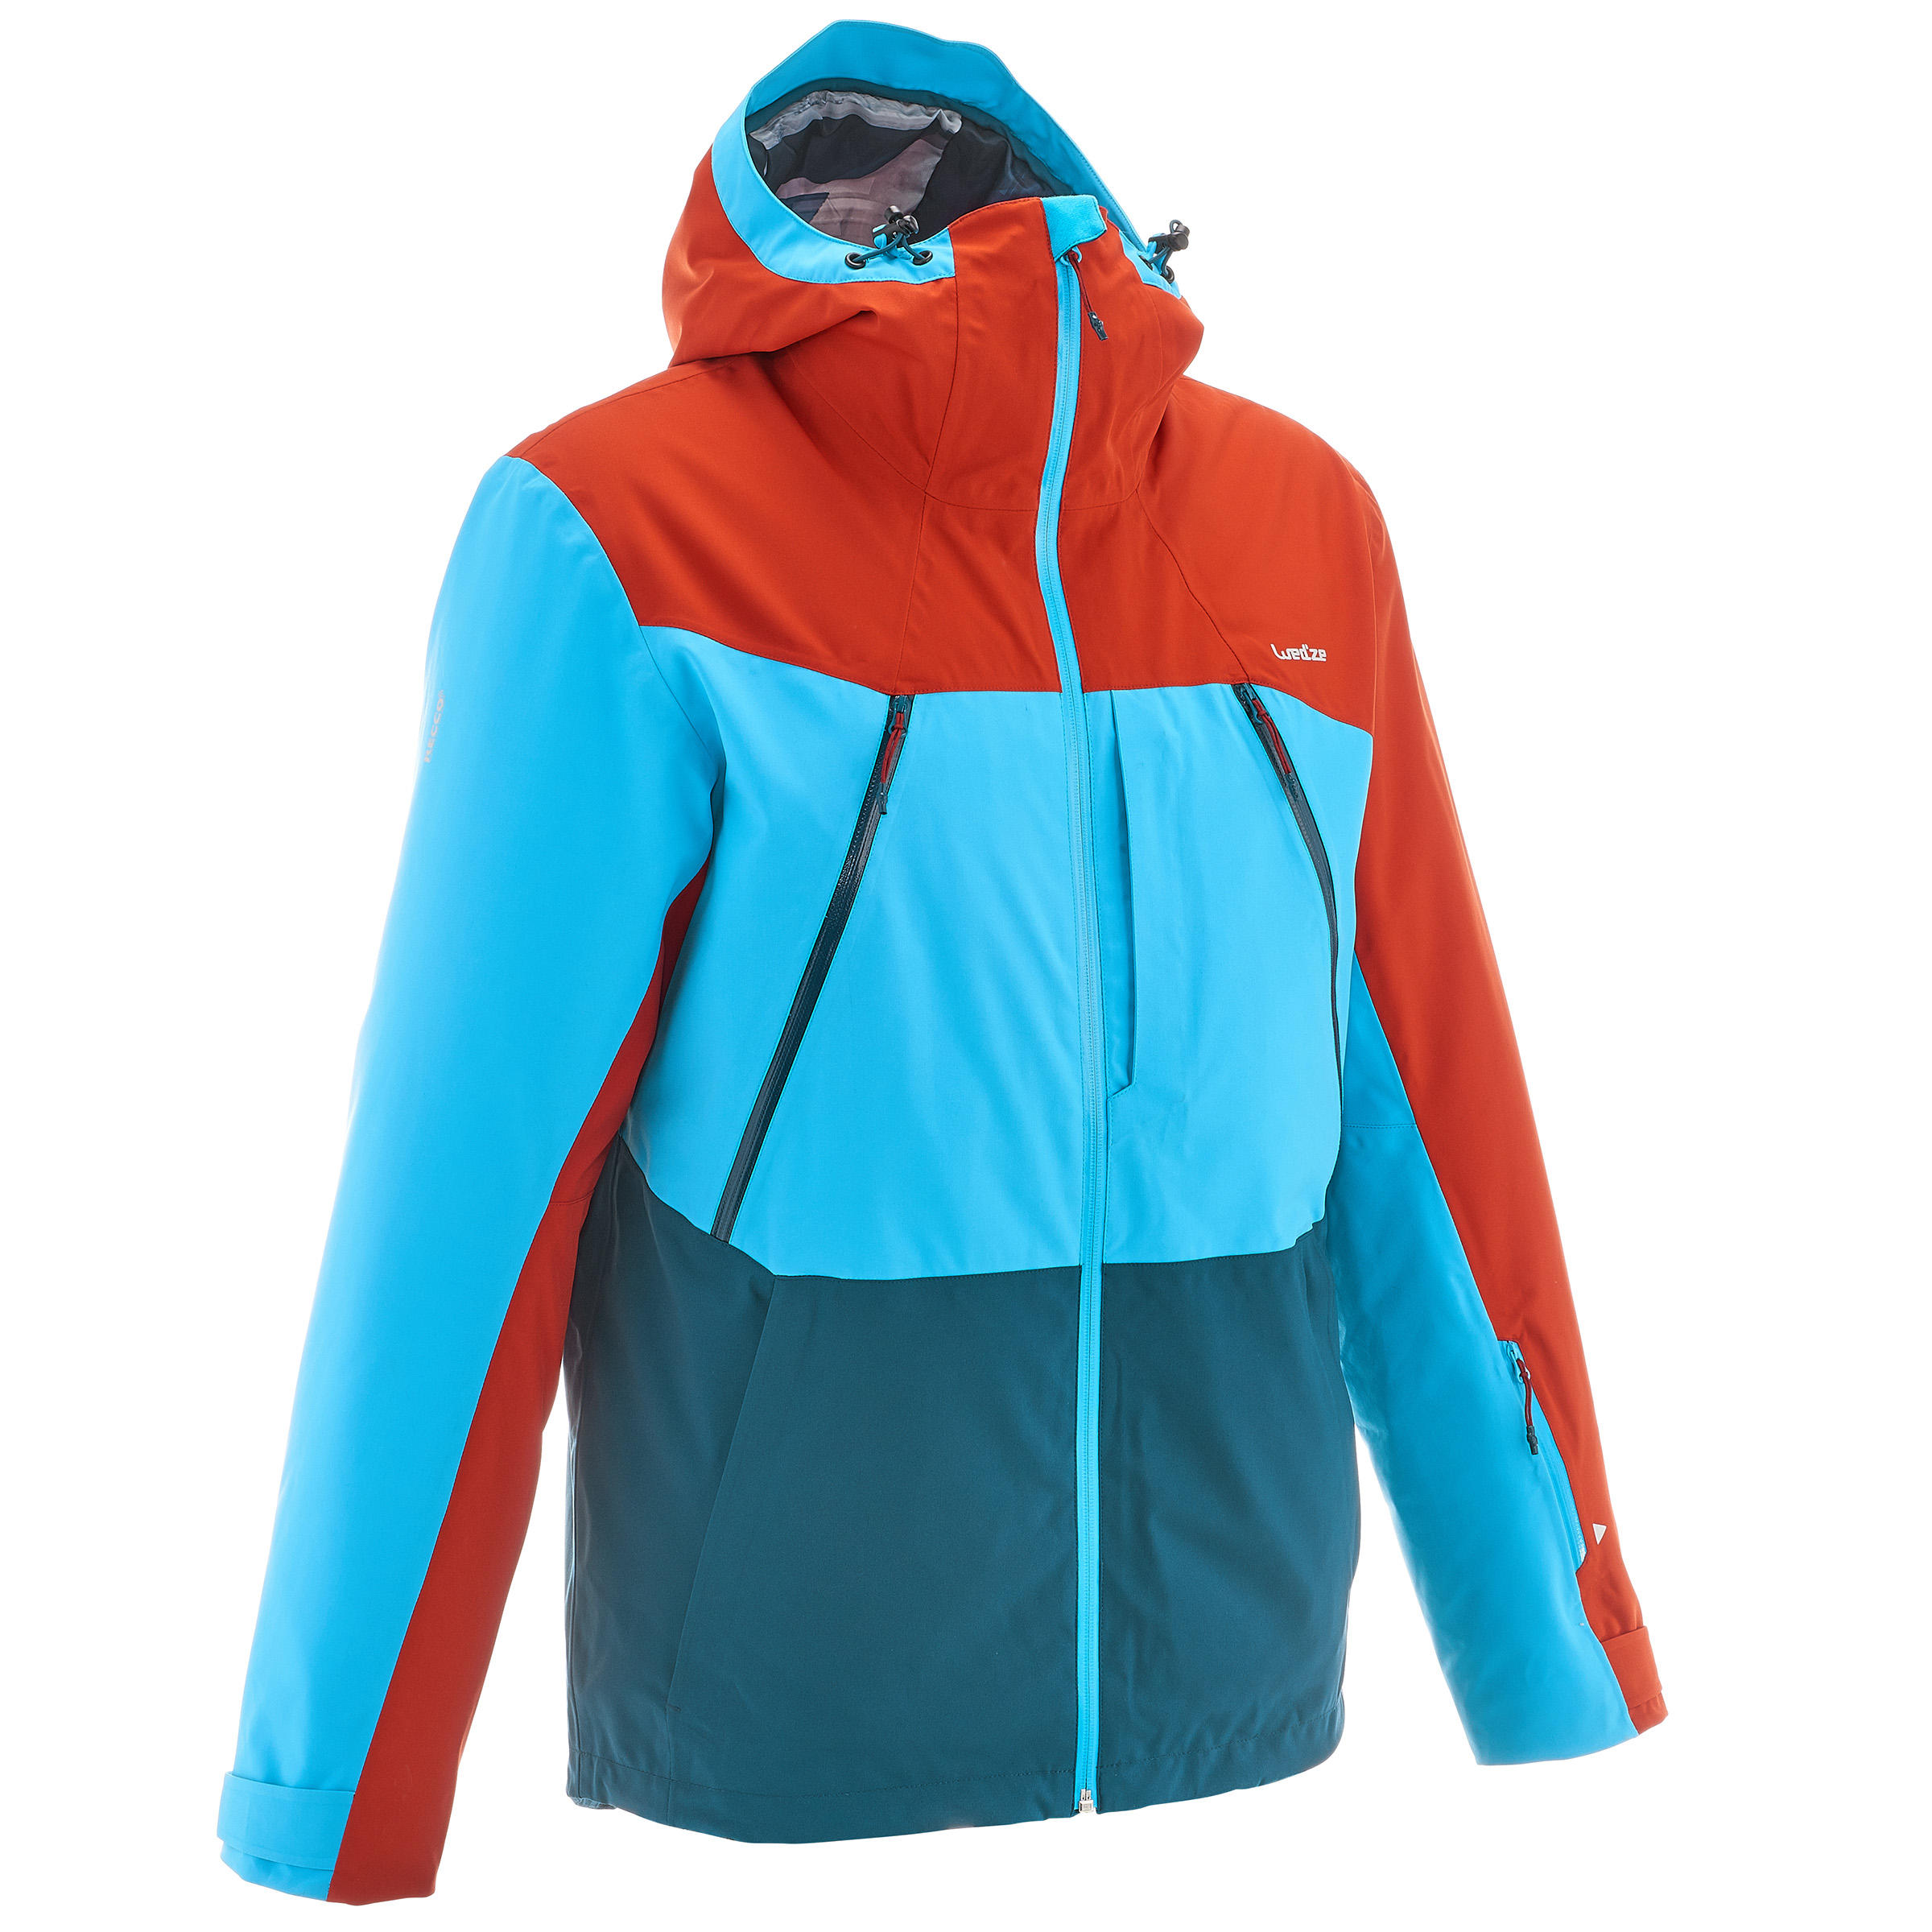 Free 700 Men's Freeride Ski Jacket - Red/Blue